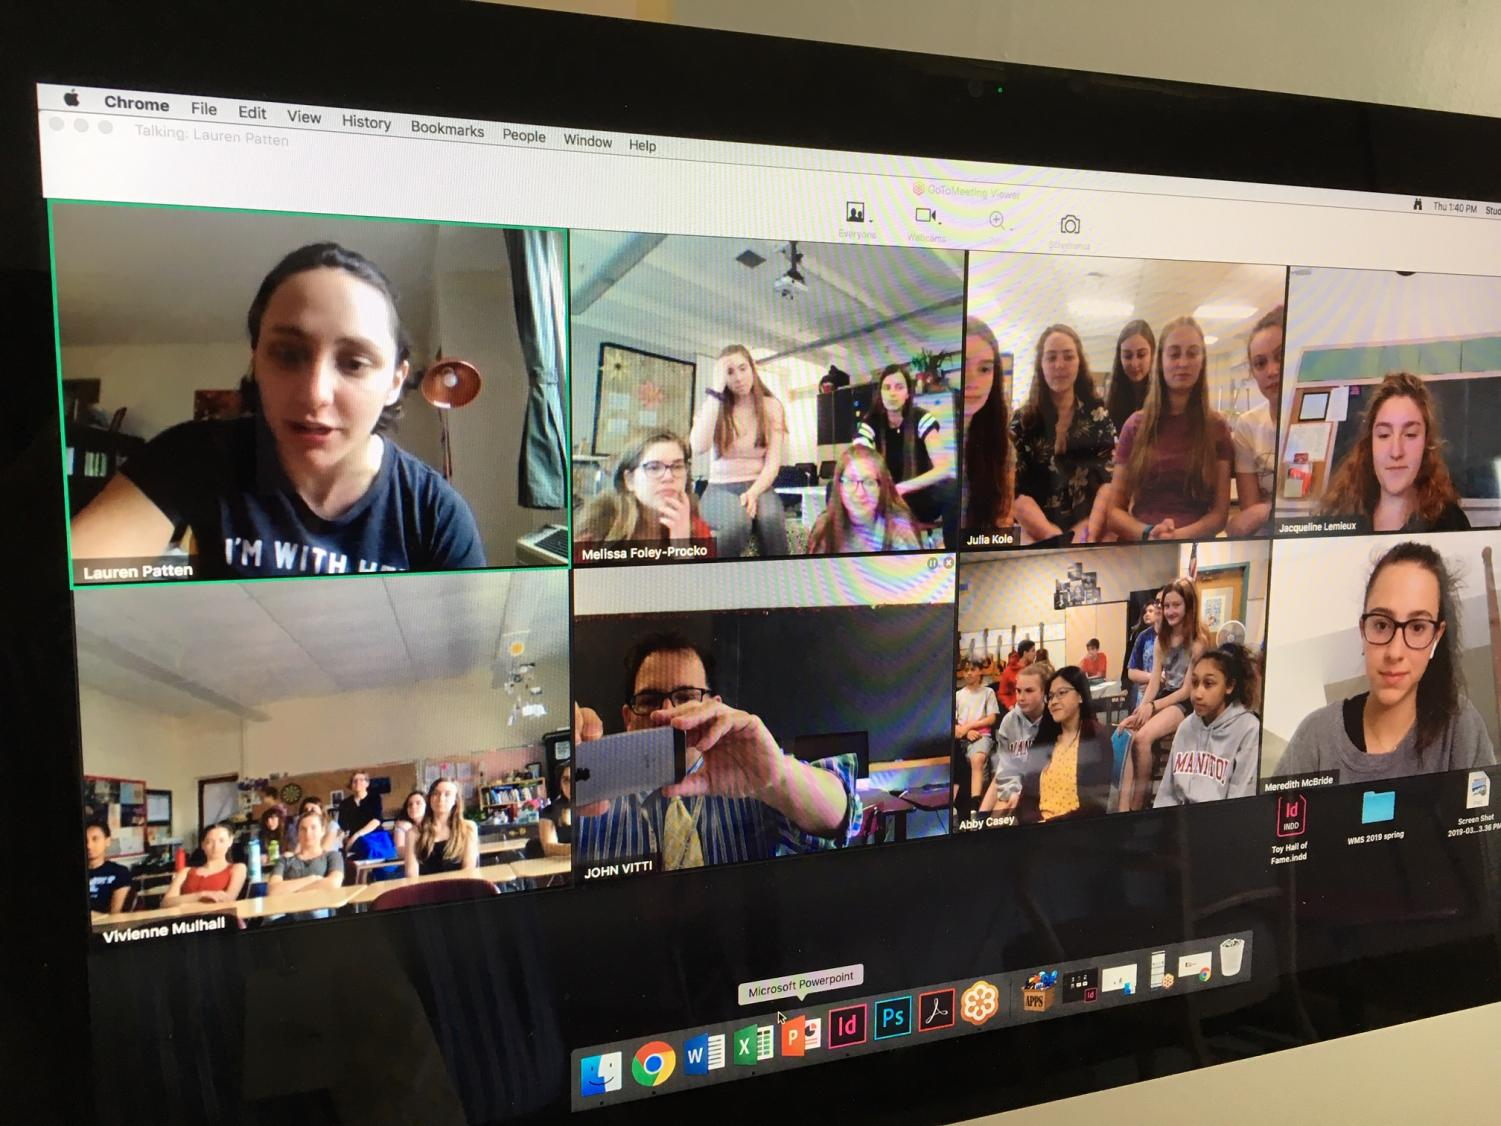 Lauren Patten was in New York City (top left) when she was interviewed by students in classrooms throughout Massachusetts about her career and her role in